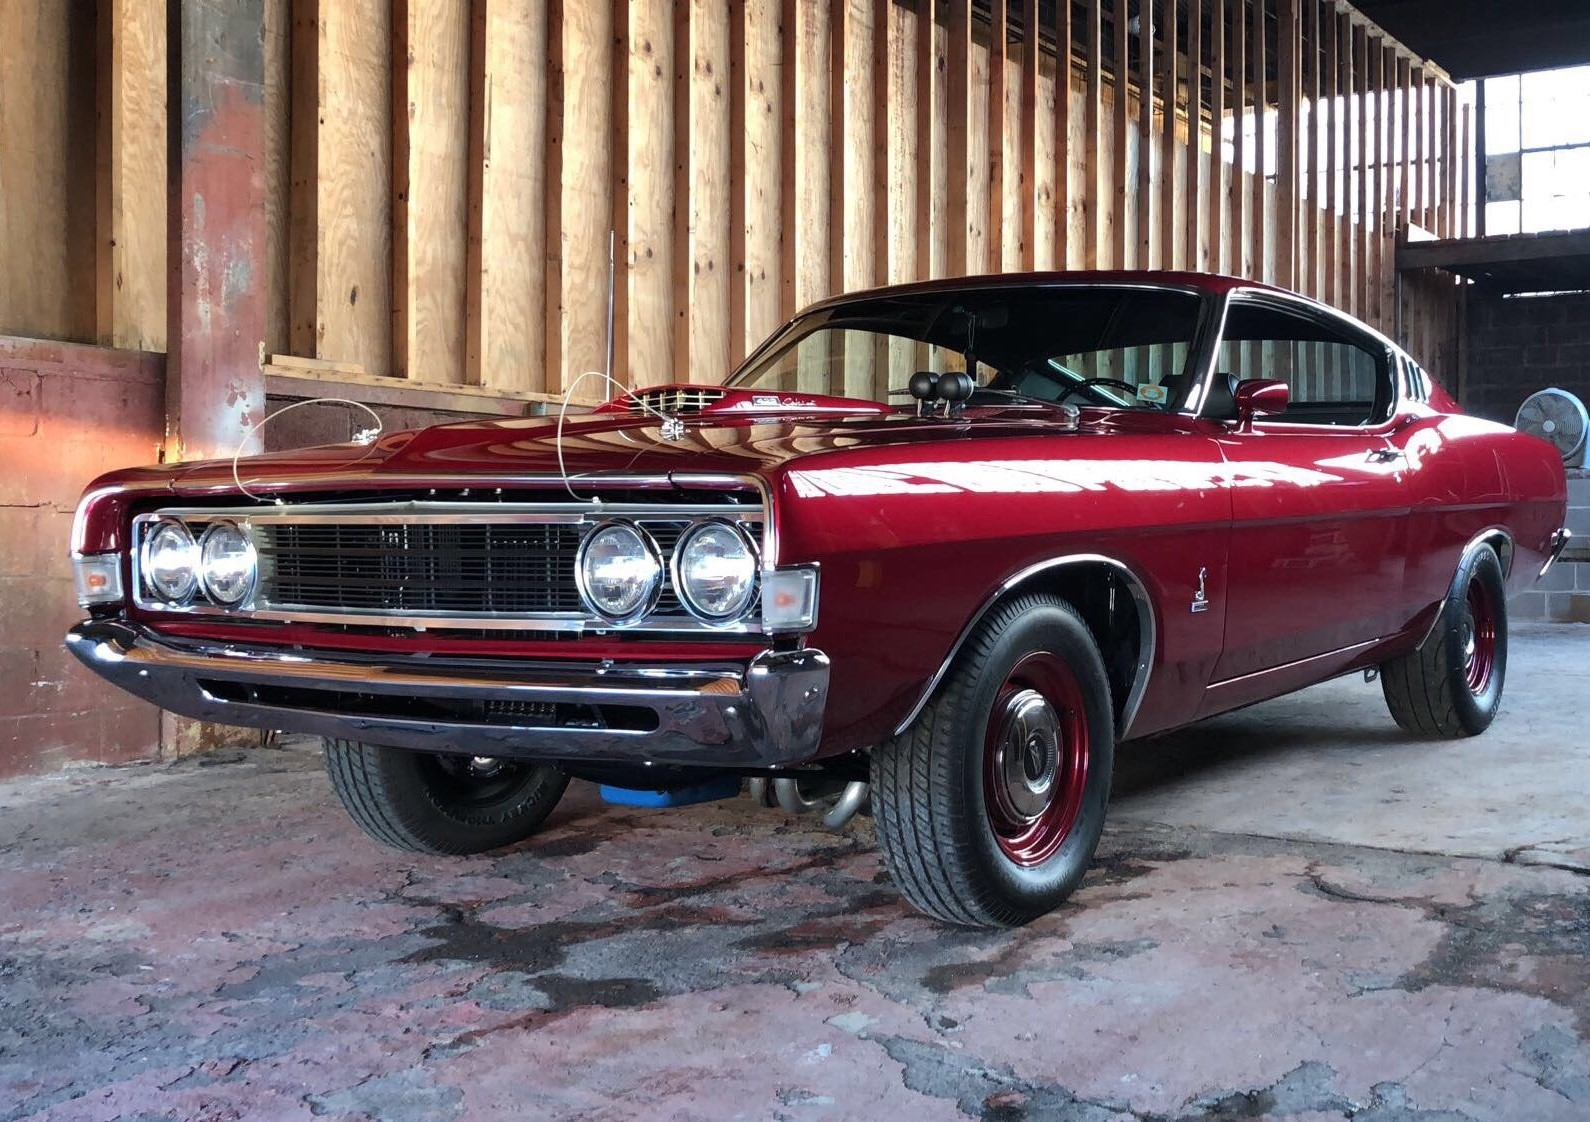 Consignment | JD's Classic and Muscle Car Sales